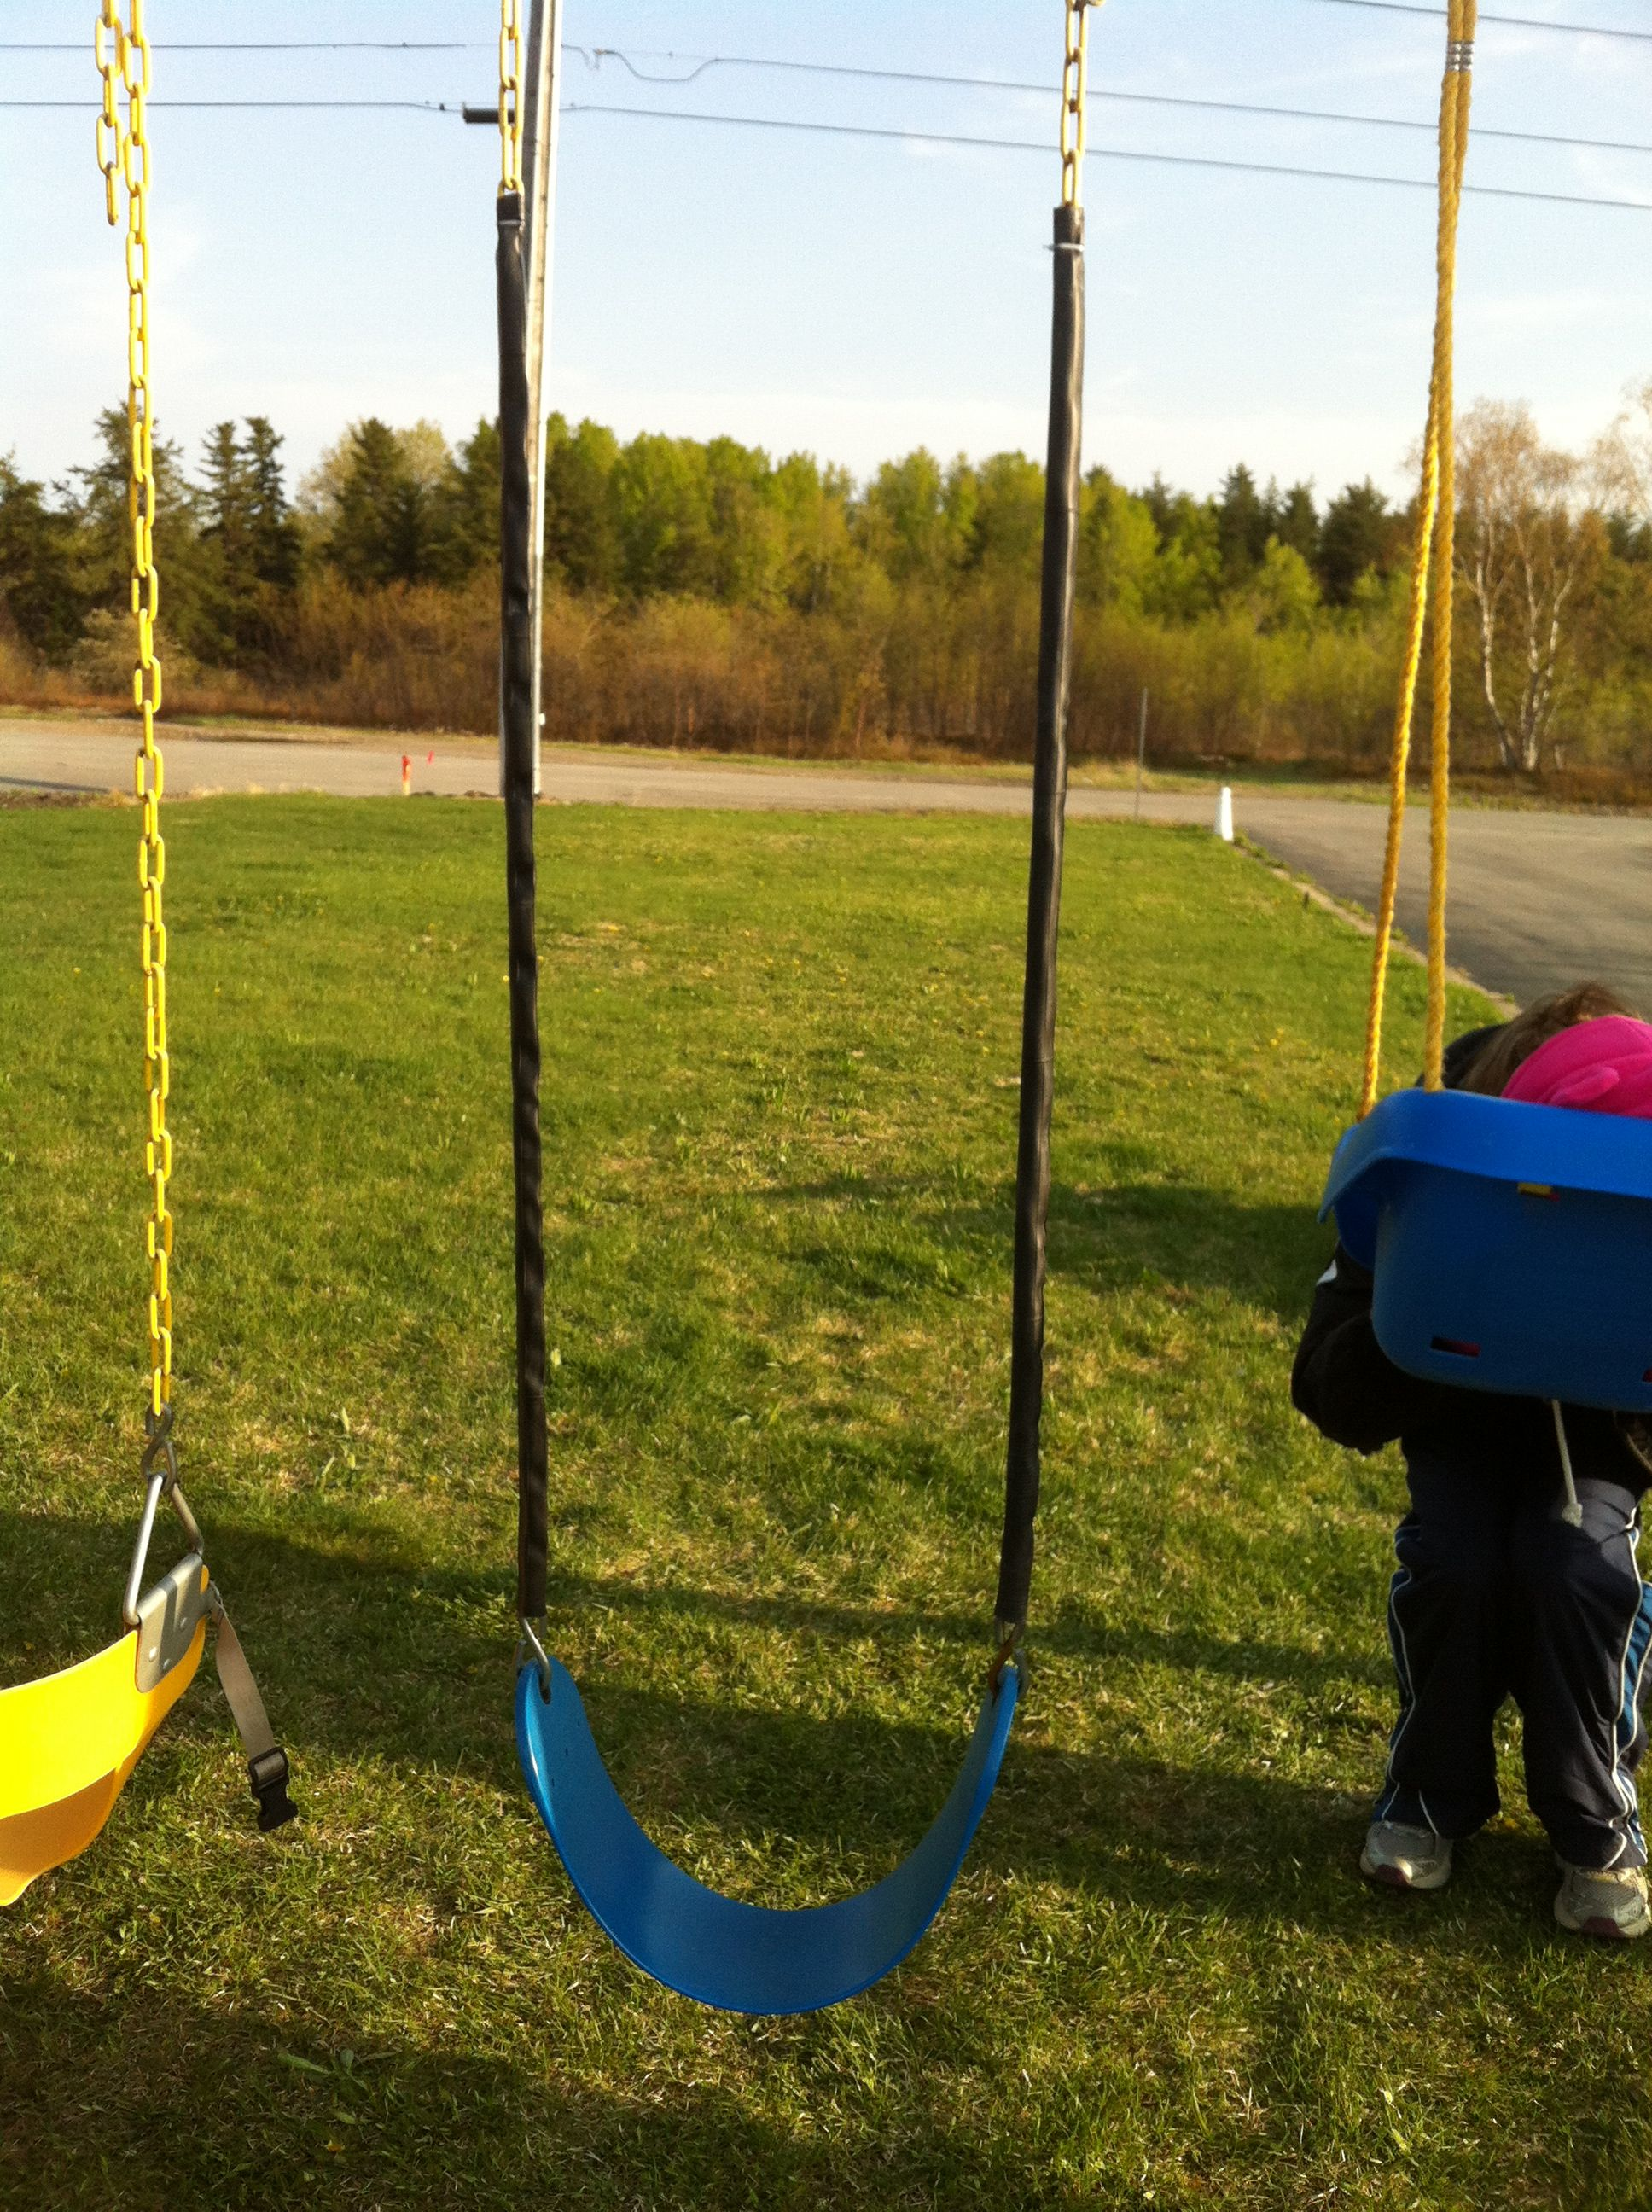 Cheap and simple fix for rusty chains on a swing set I purchased a